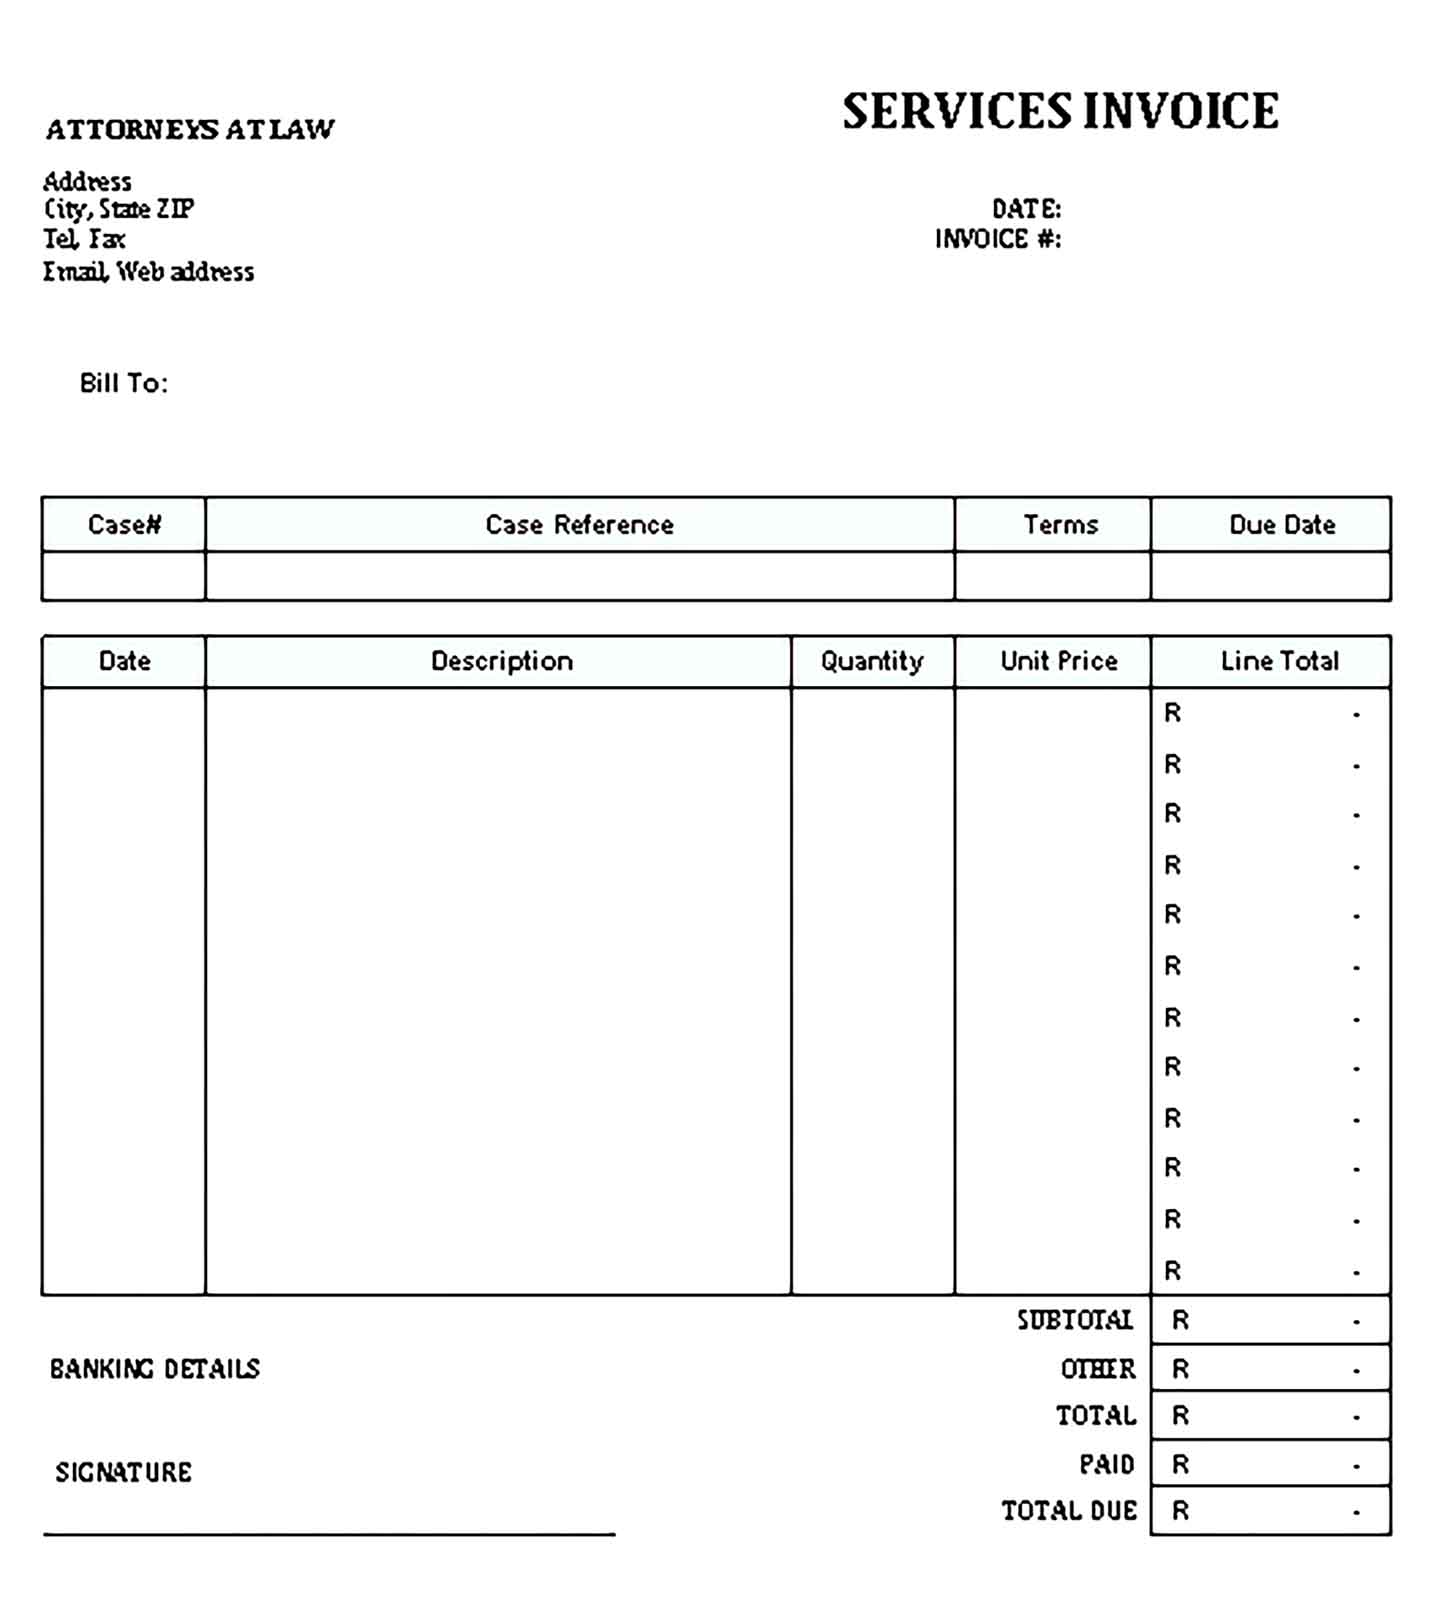 Sample Templates Invoice for Legal Services